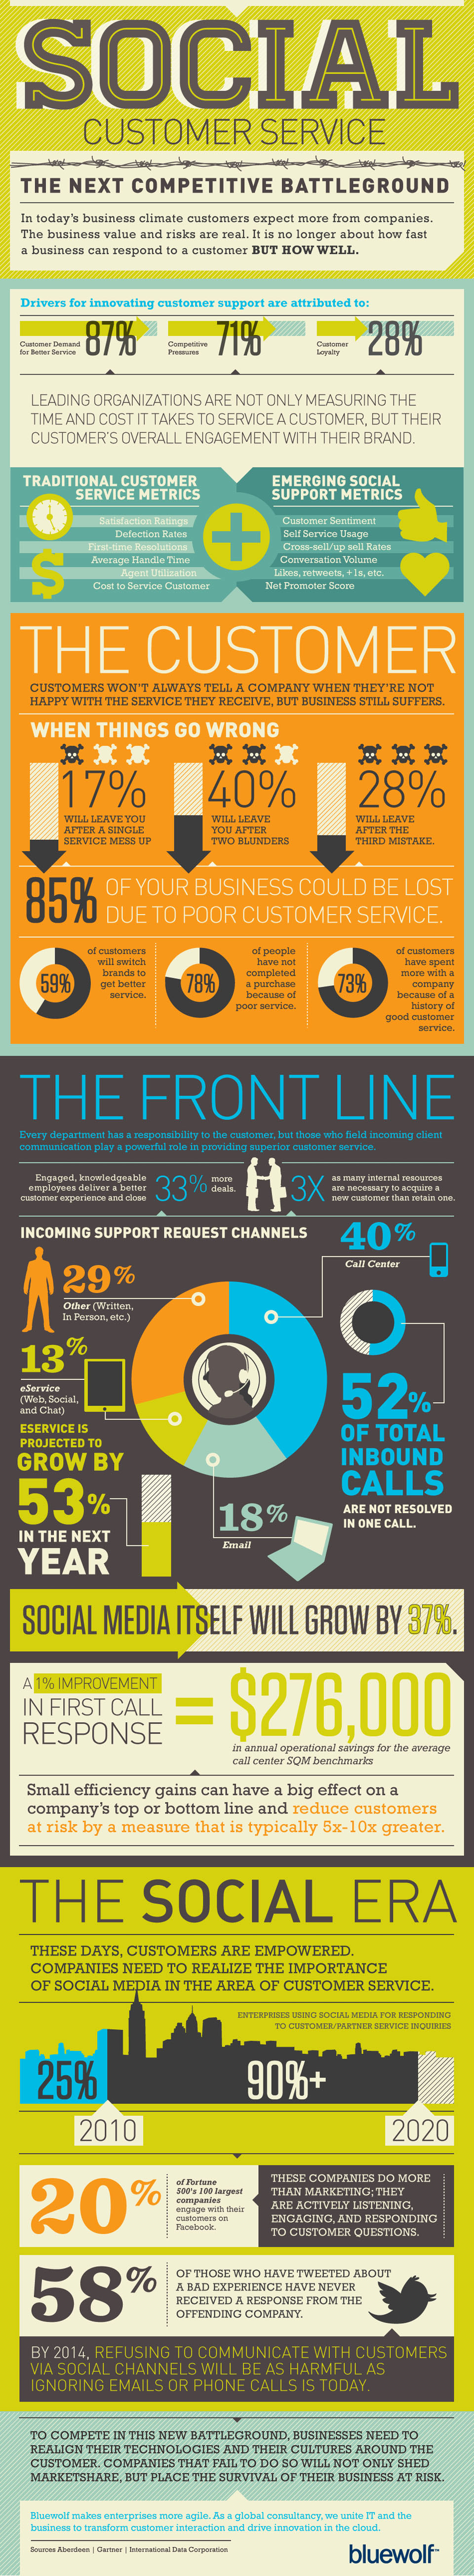 Social-Customer-Service-infographic